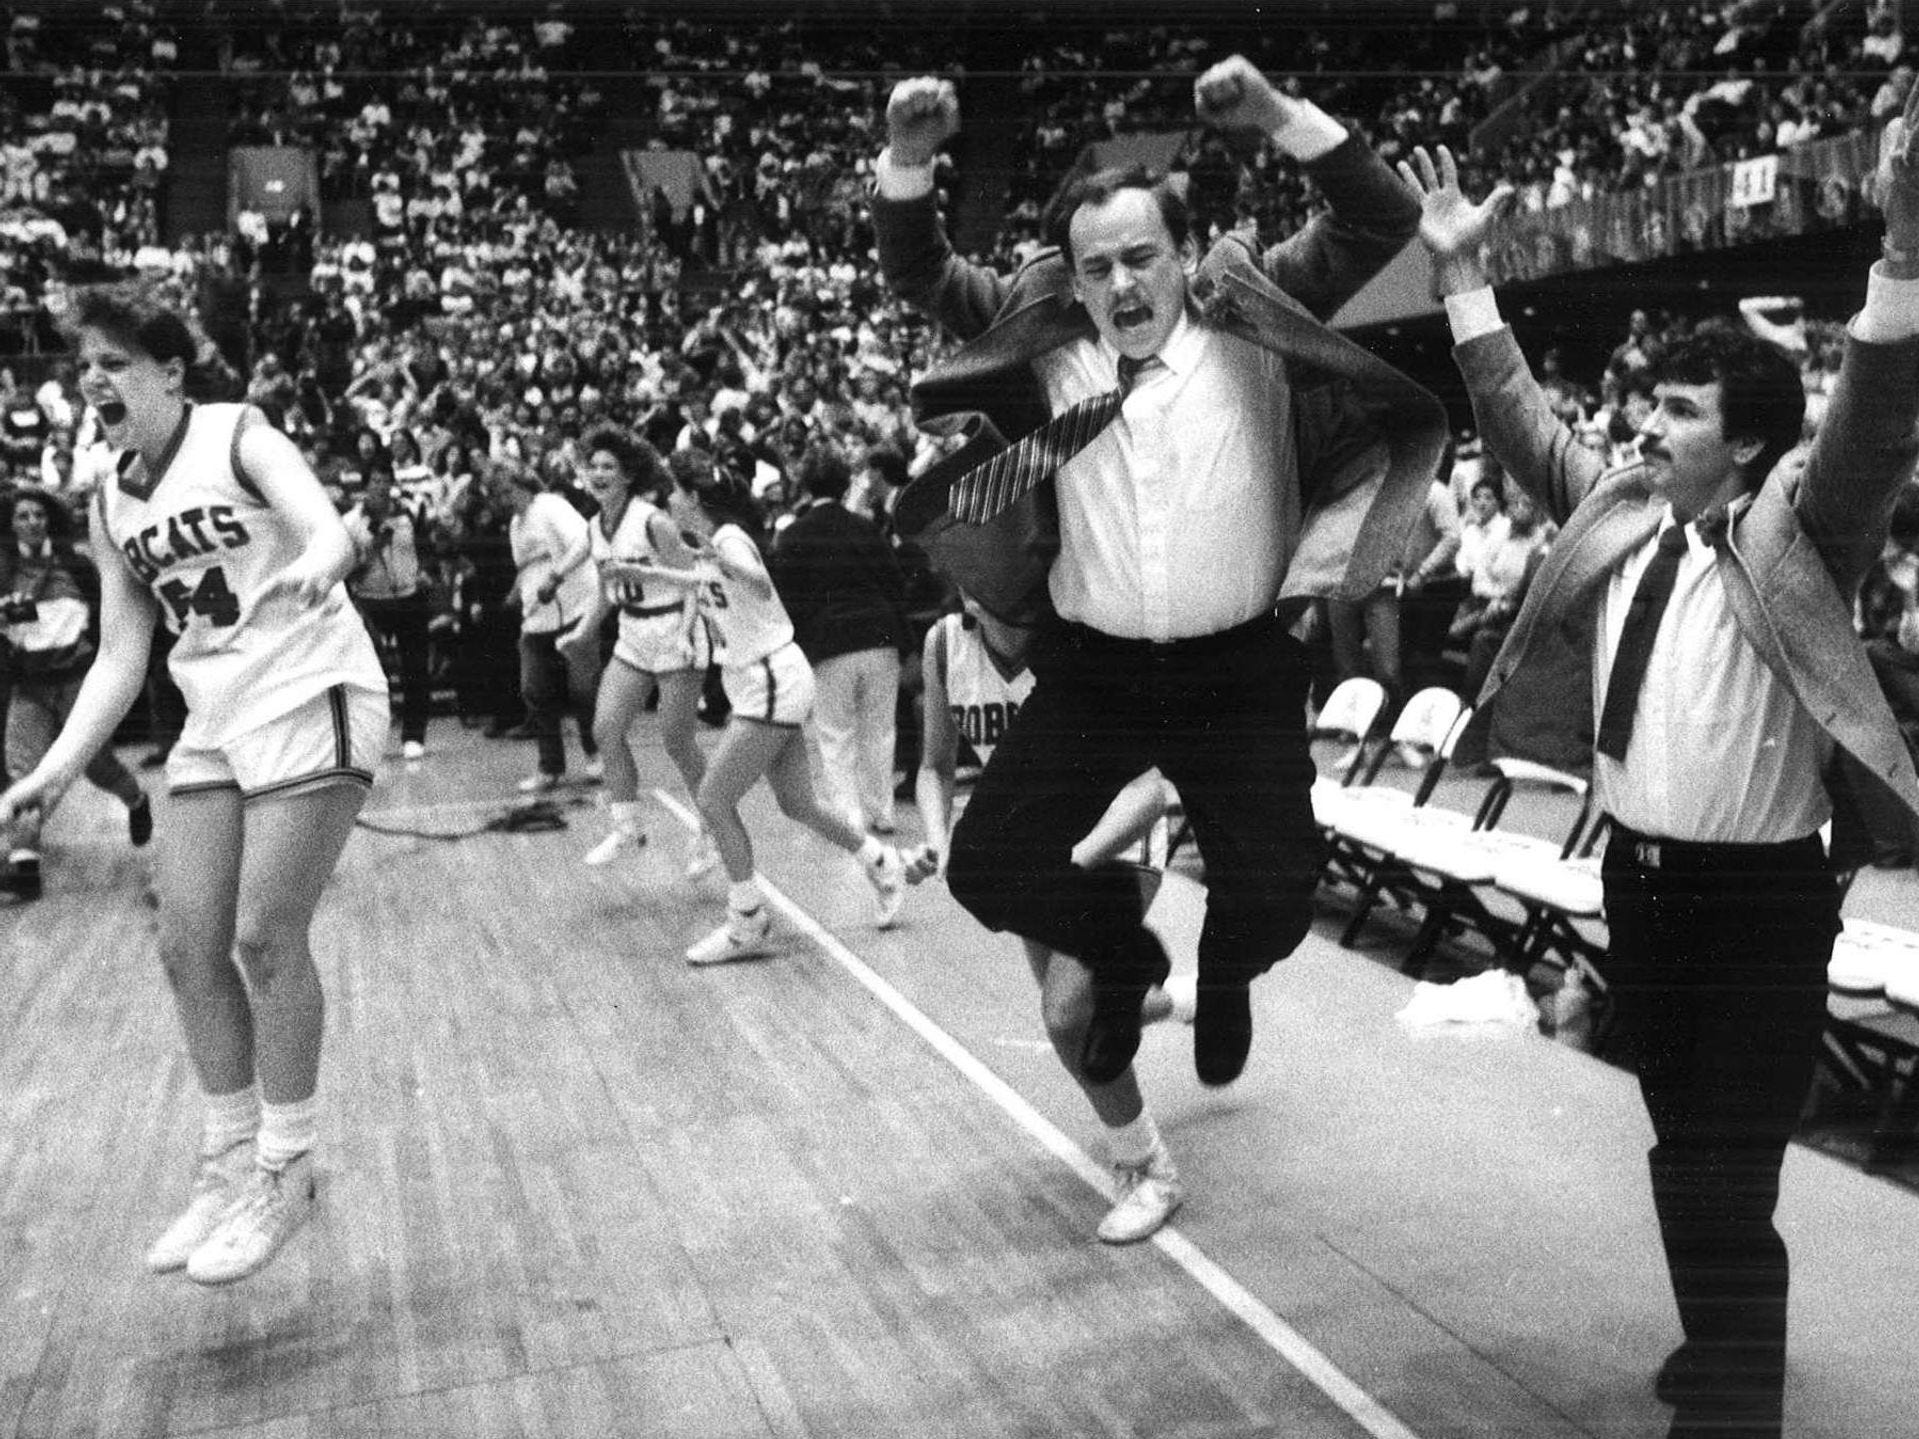 1987: Western Dubuque player Kim Kluesner (54), assistant coach Jim Demmer and coach Bill Hoefer celebrate after their team victory. Register file photo